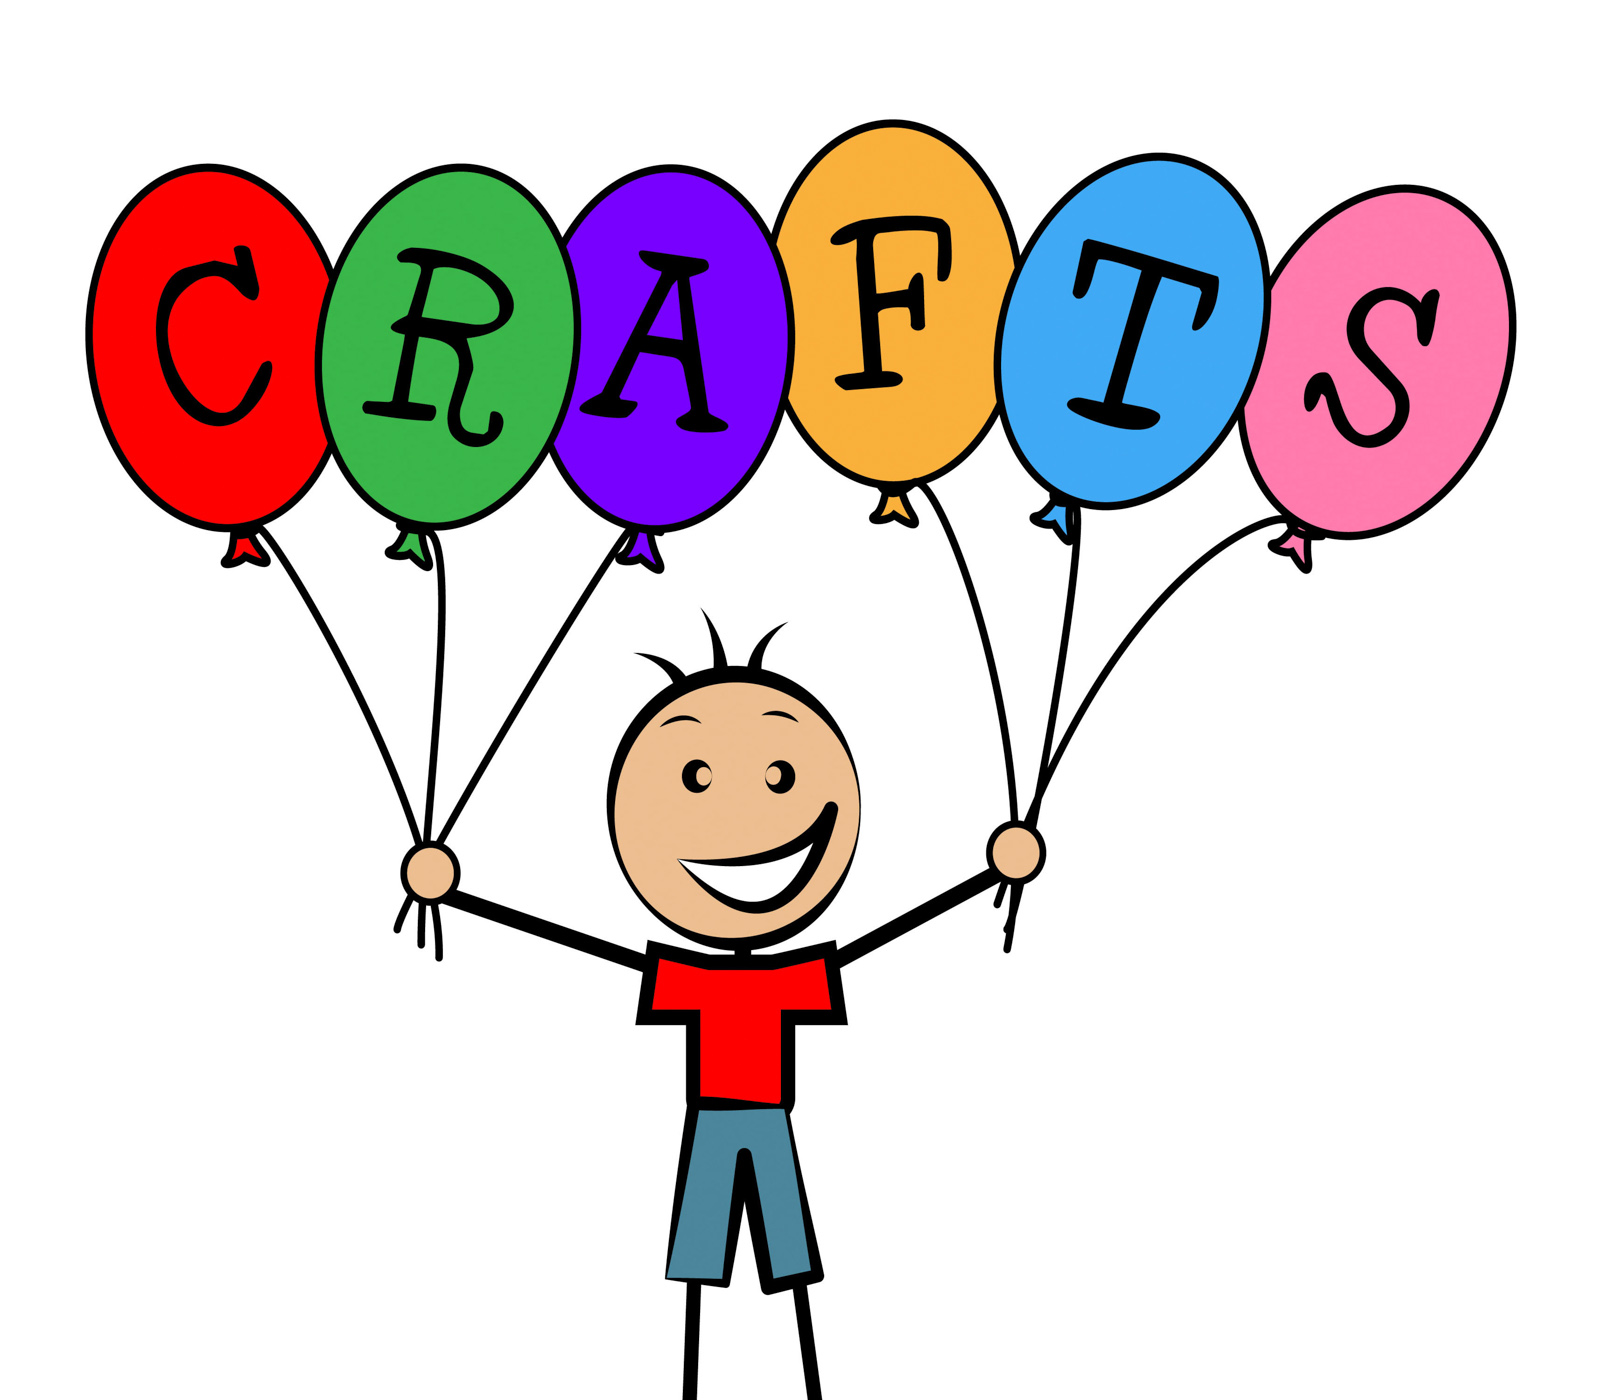 Crafts balloons indicates bunch male and designing photo